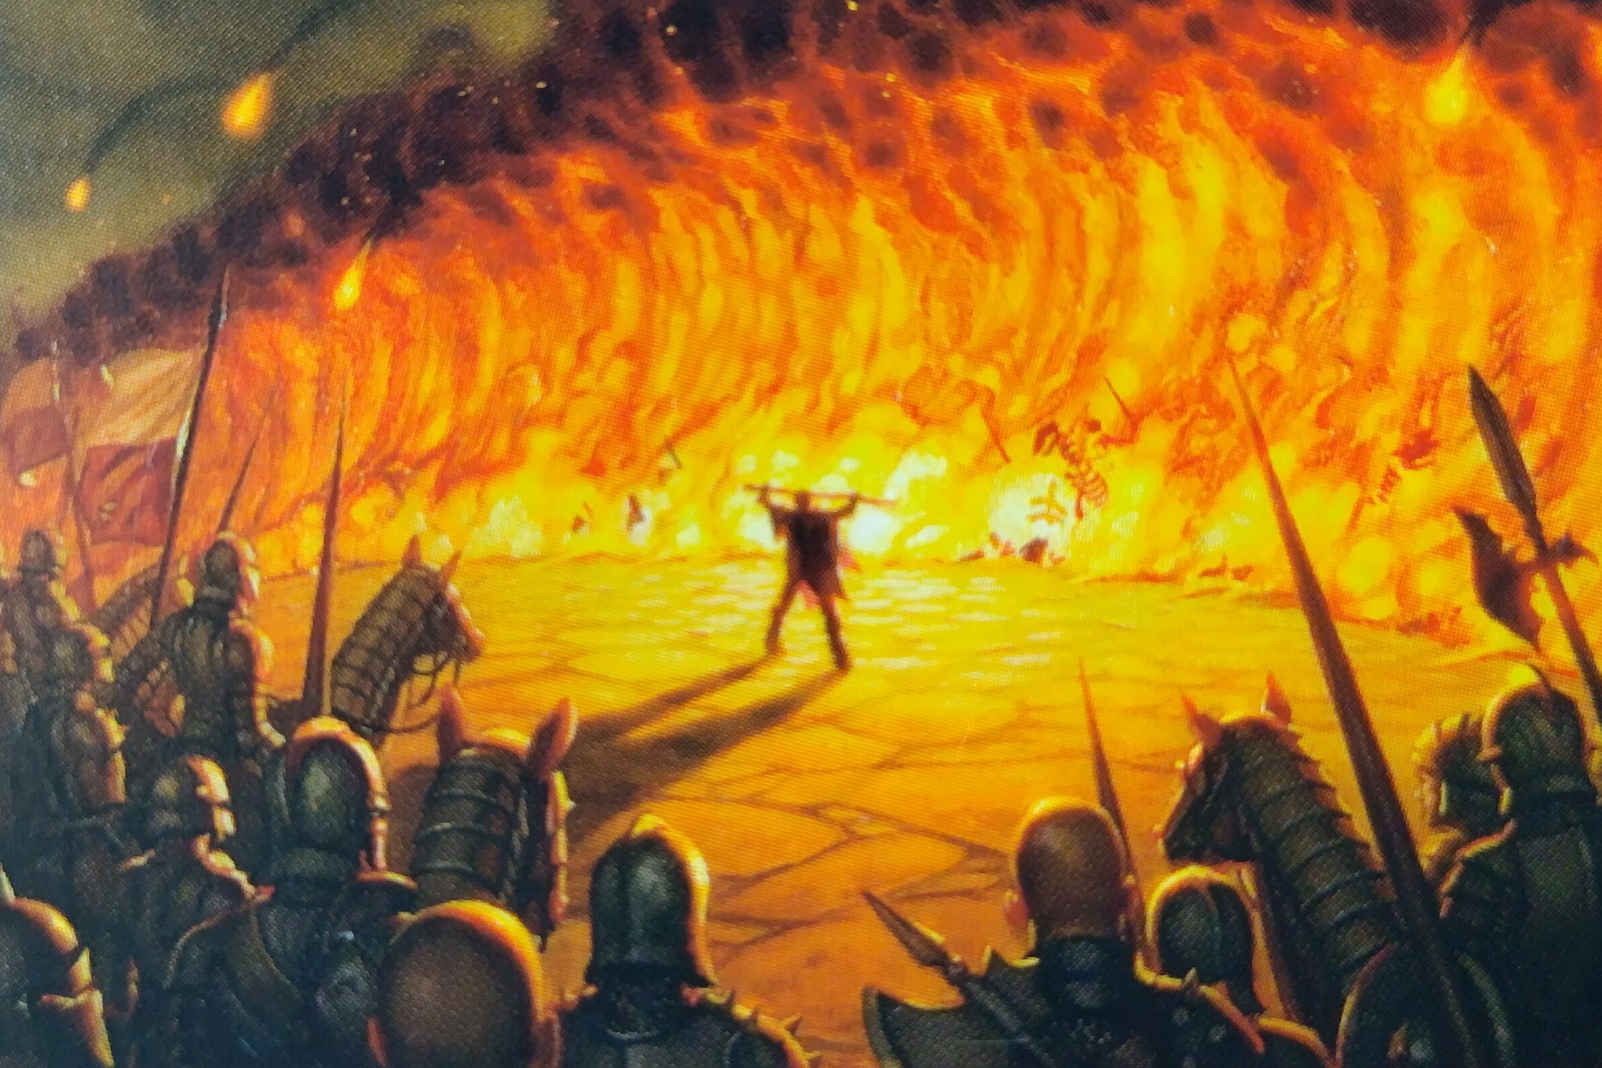 MTG Wall of Fire card Image: Wizards of the Coast. Artist: Dan Dos Santos